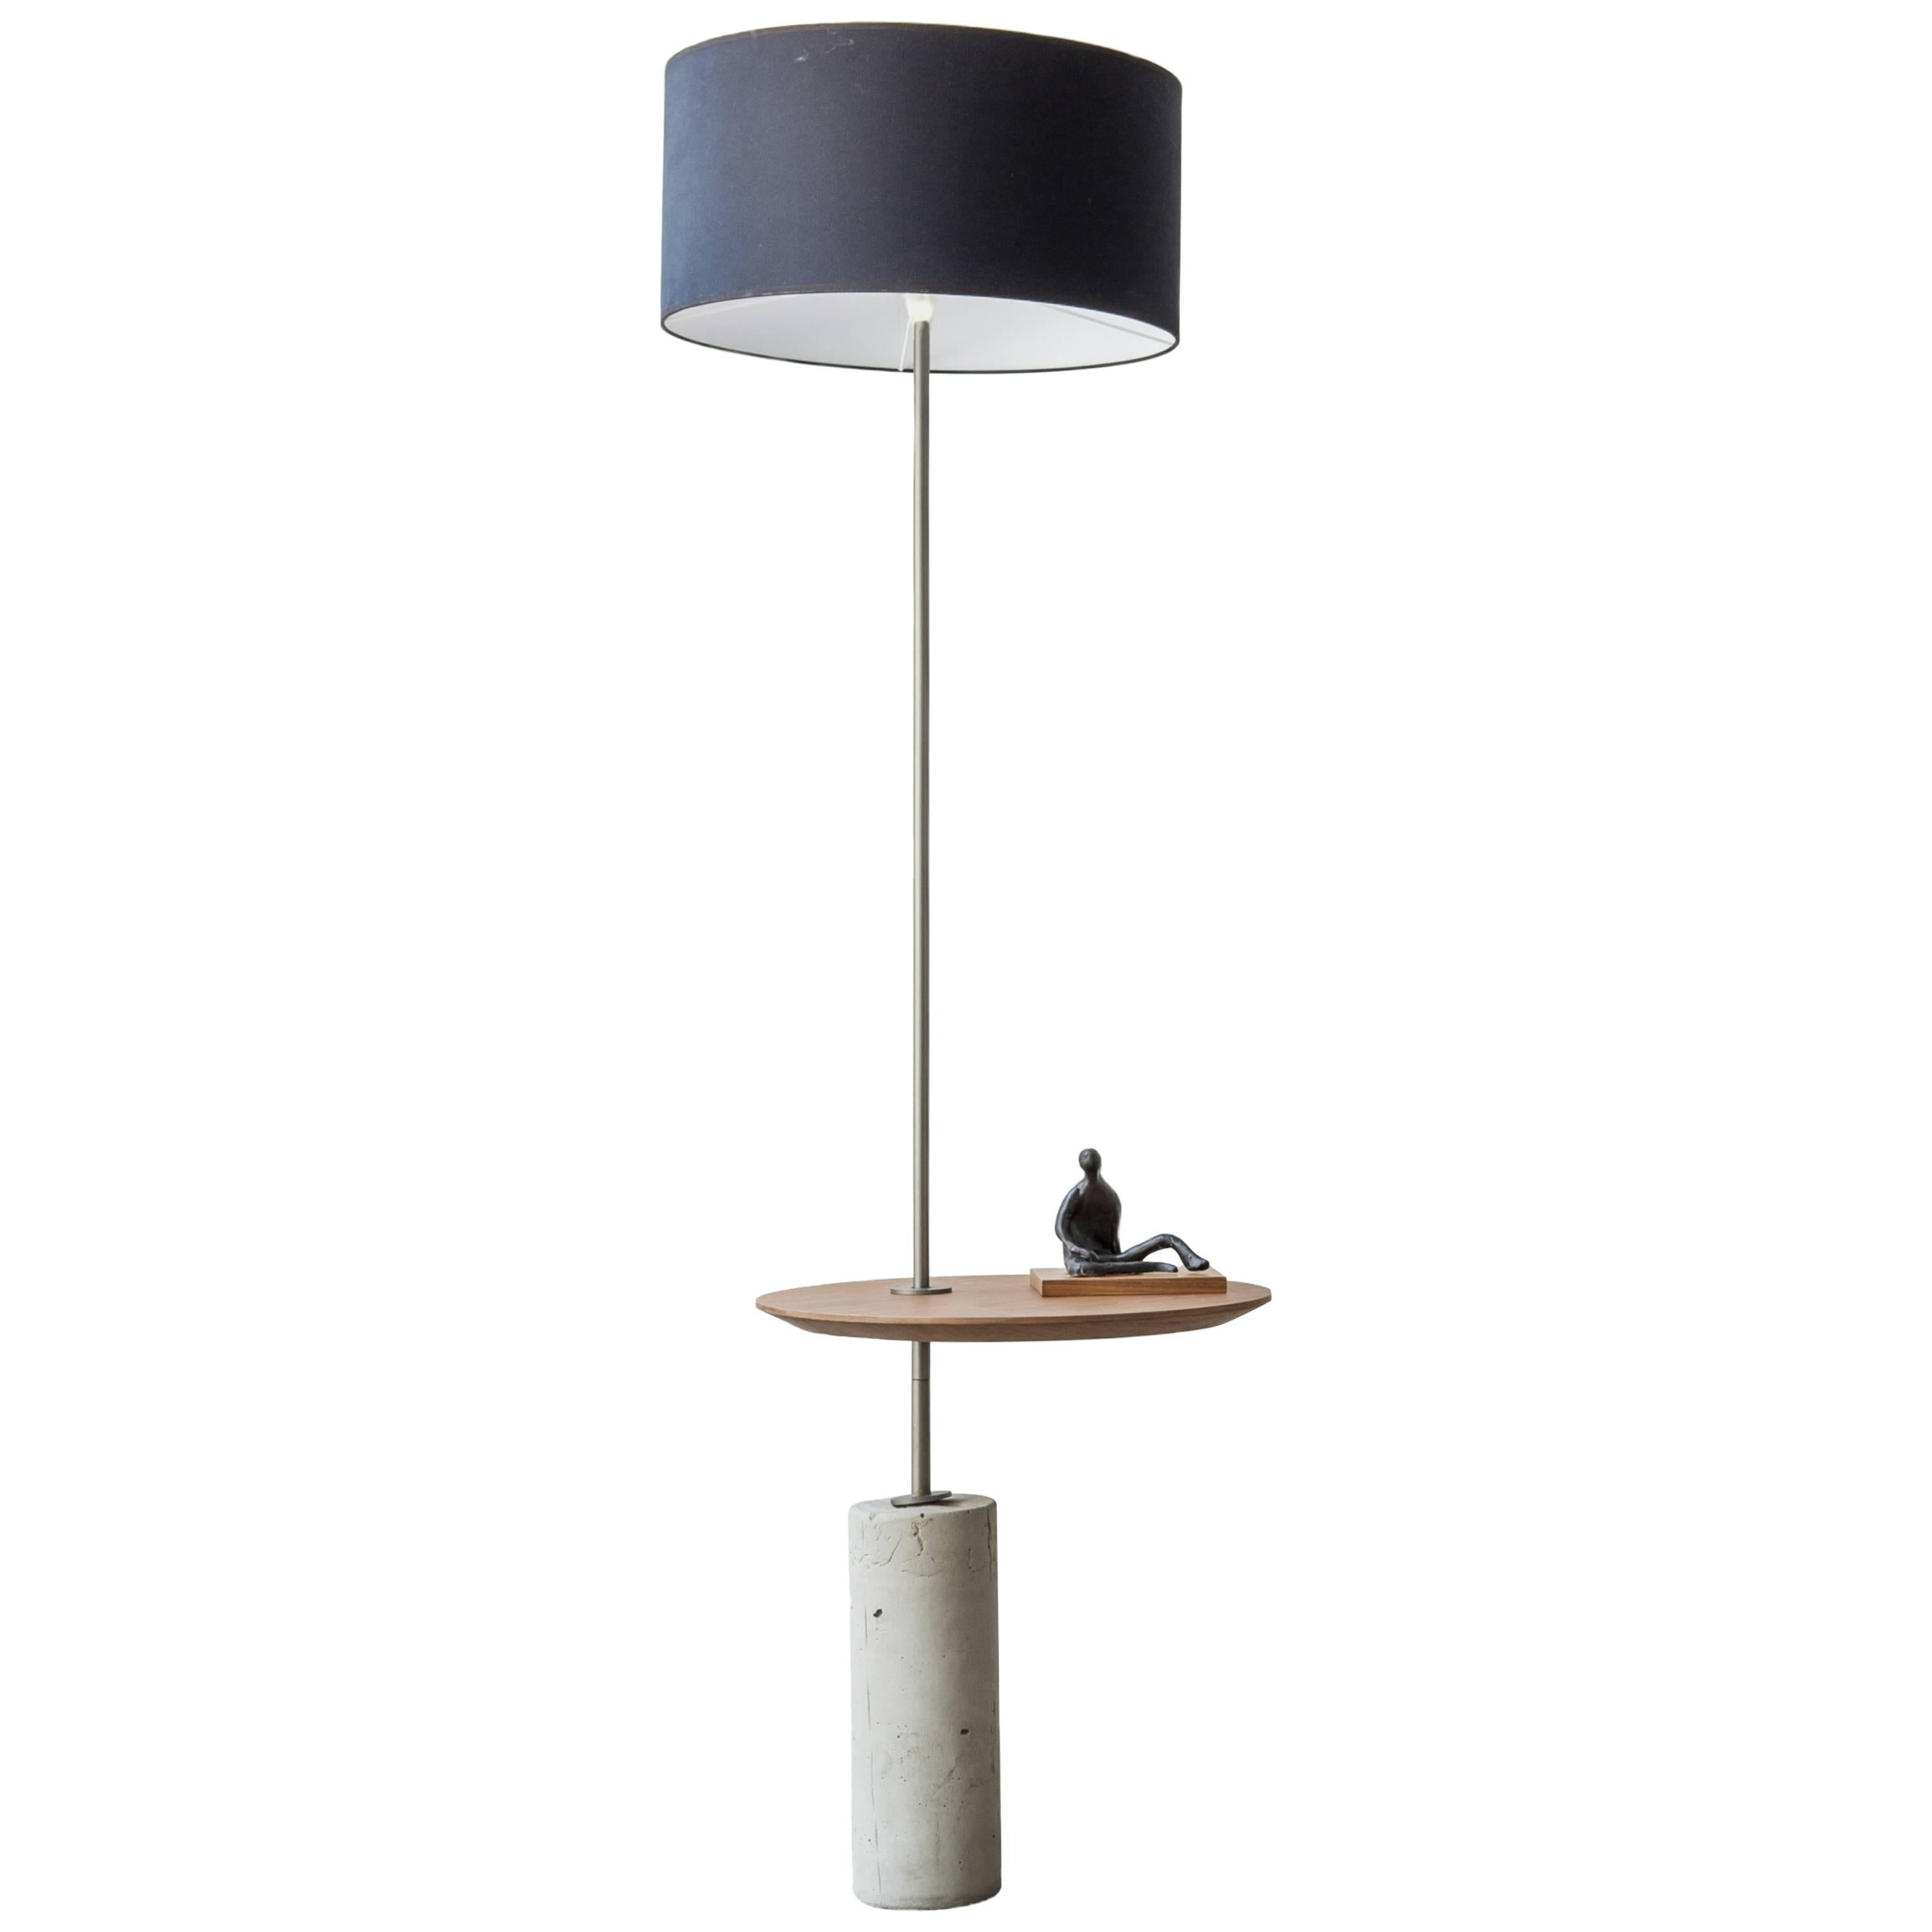 Giro Minimalist Floor Lamp In Painted Steel, Walnut And Concrete